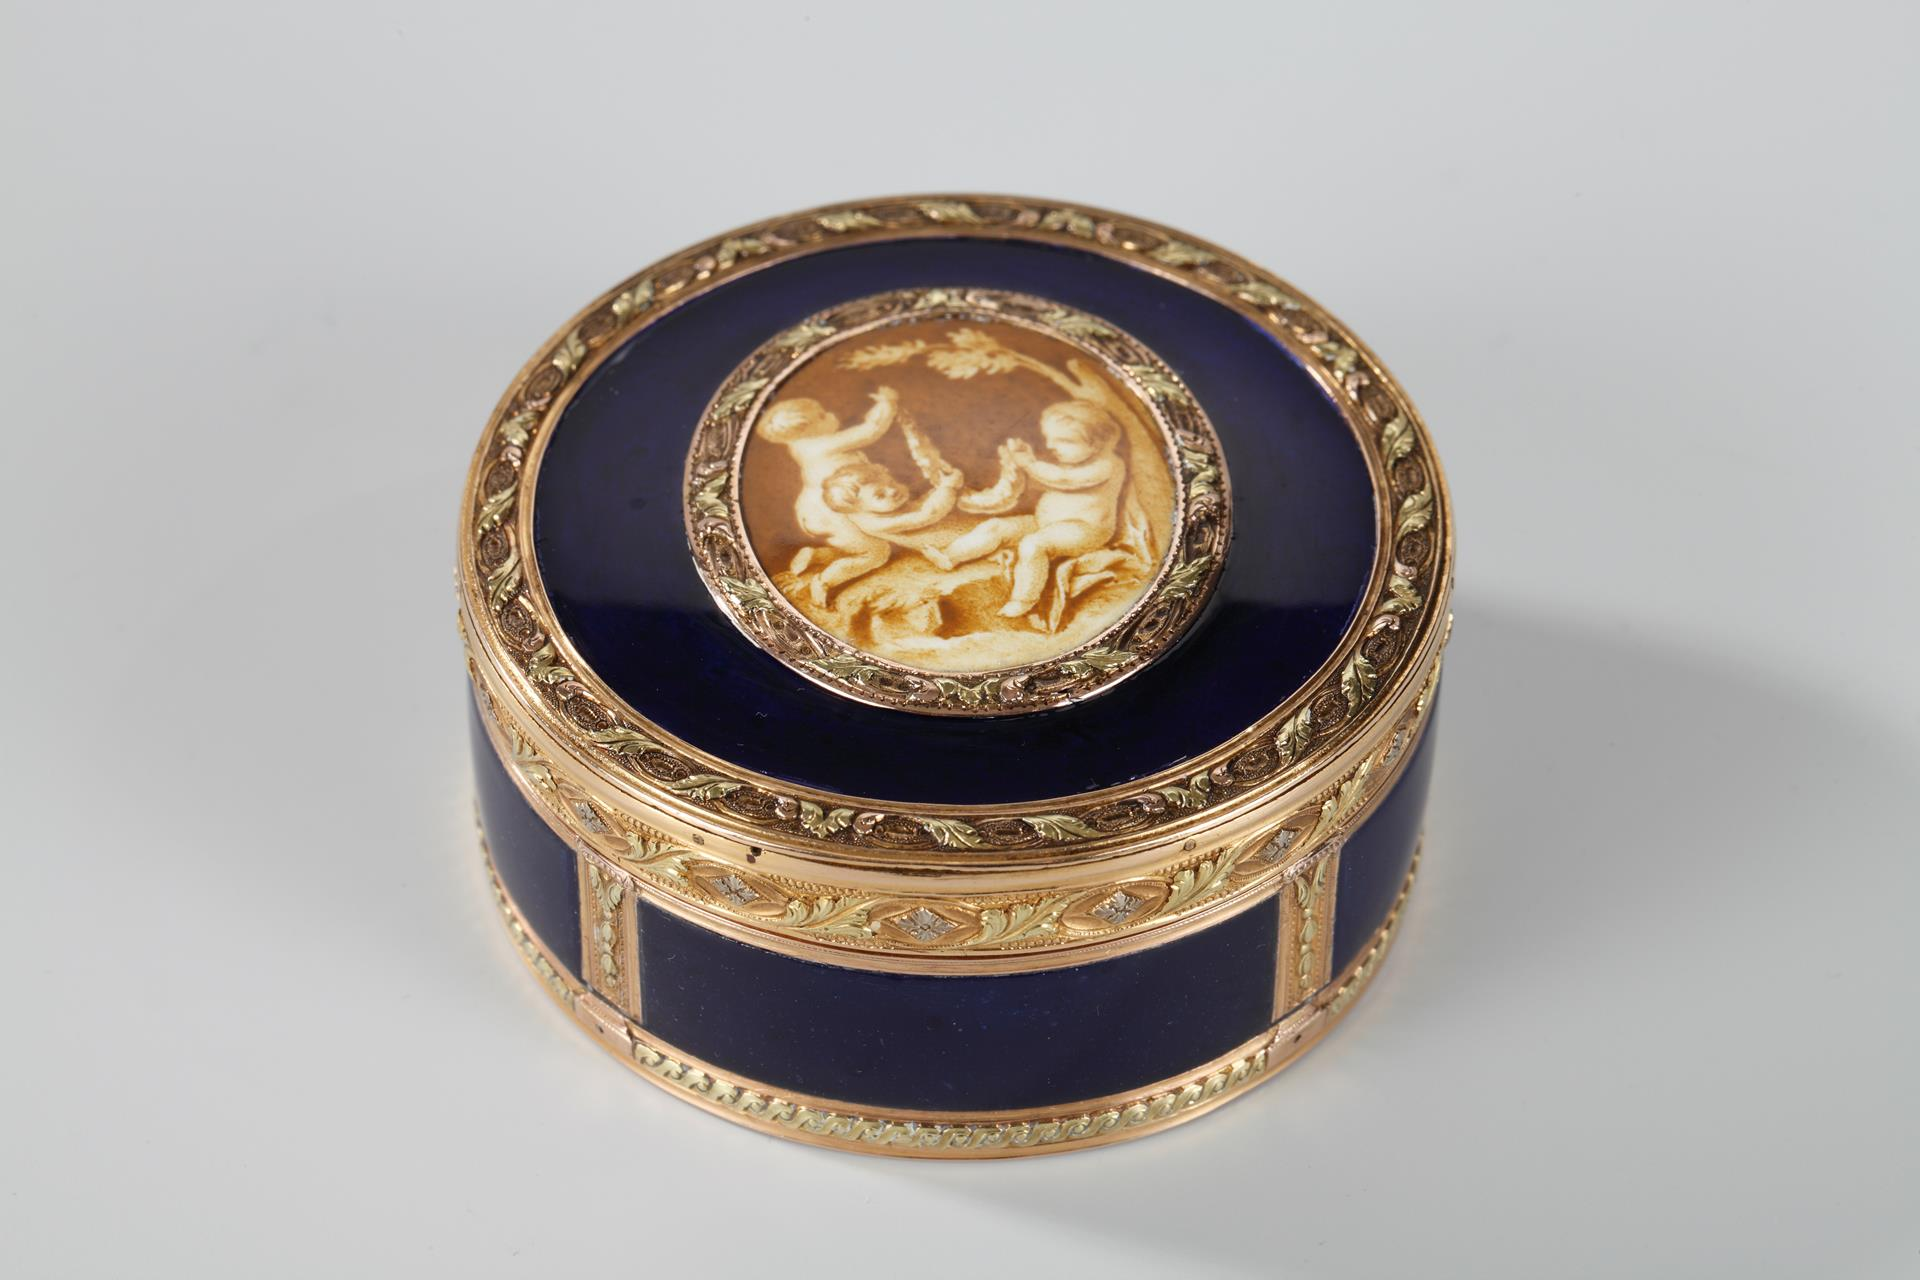 Gold and Enamel Box with Miniature on Ivory. Louis XV period.